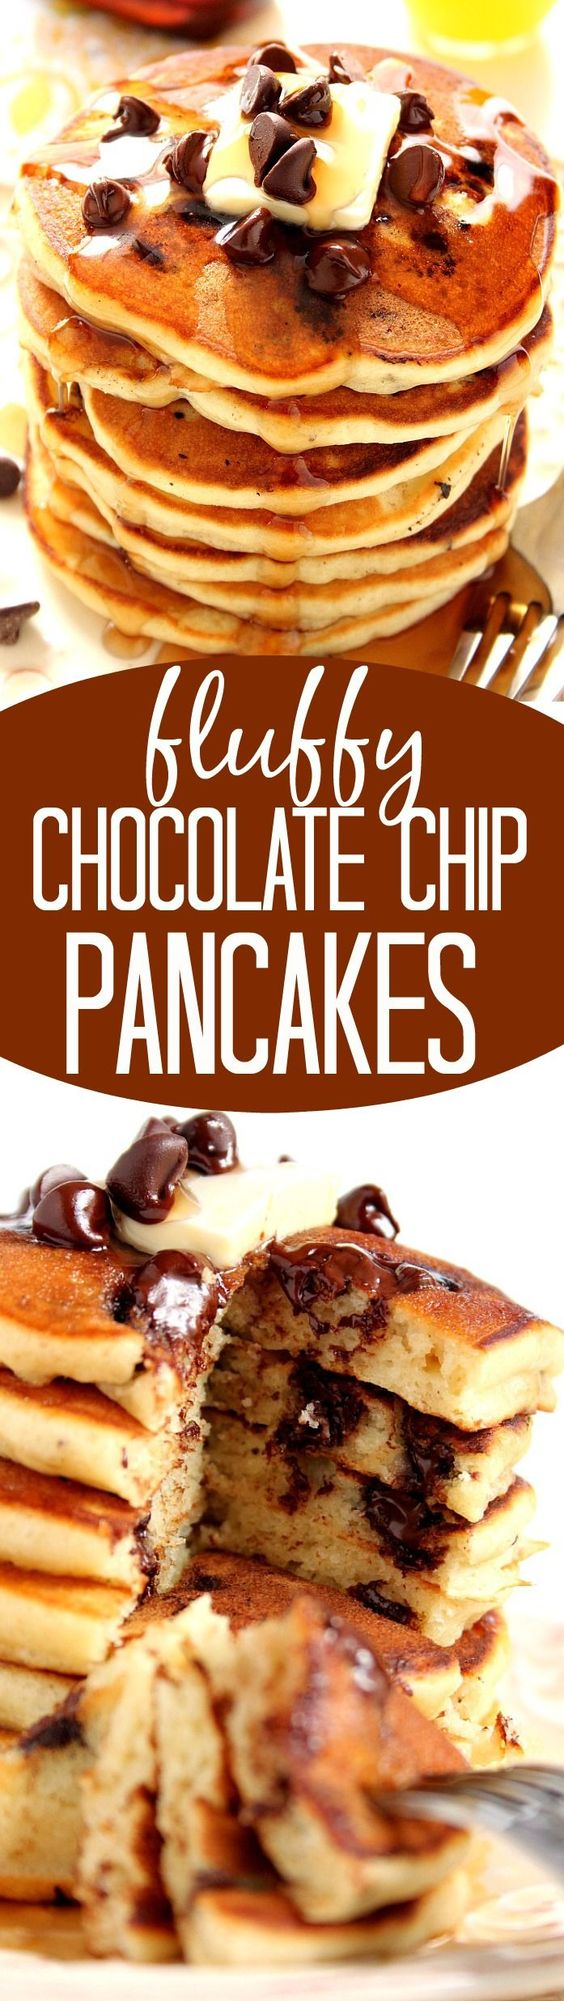 Fluffy Chocolate Chip Pancakes Recipe - fluffy buttermilk pancakes filled with chocolate chips to start your day right! Learn my trick to getting FLUFFY pancakes every time!